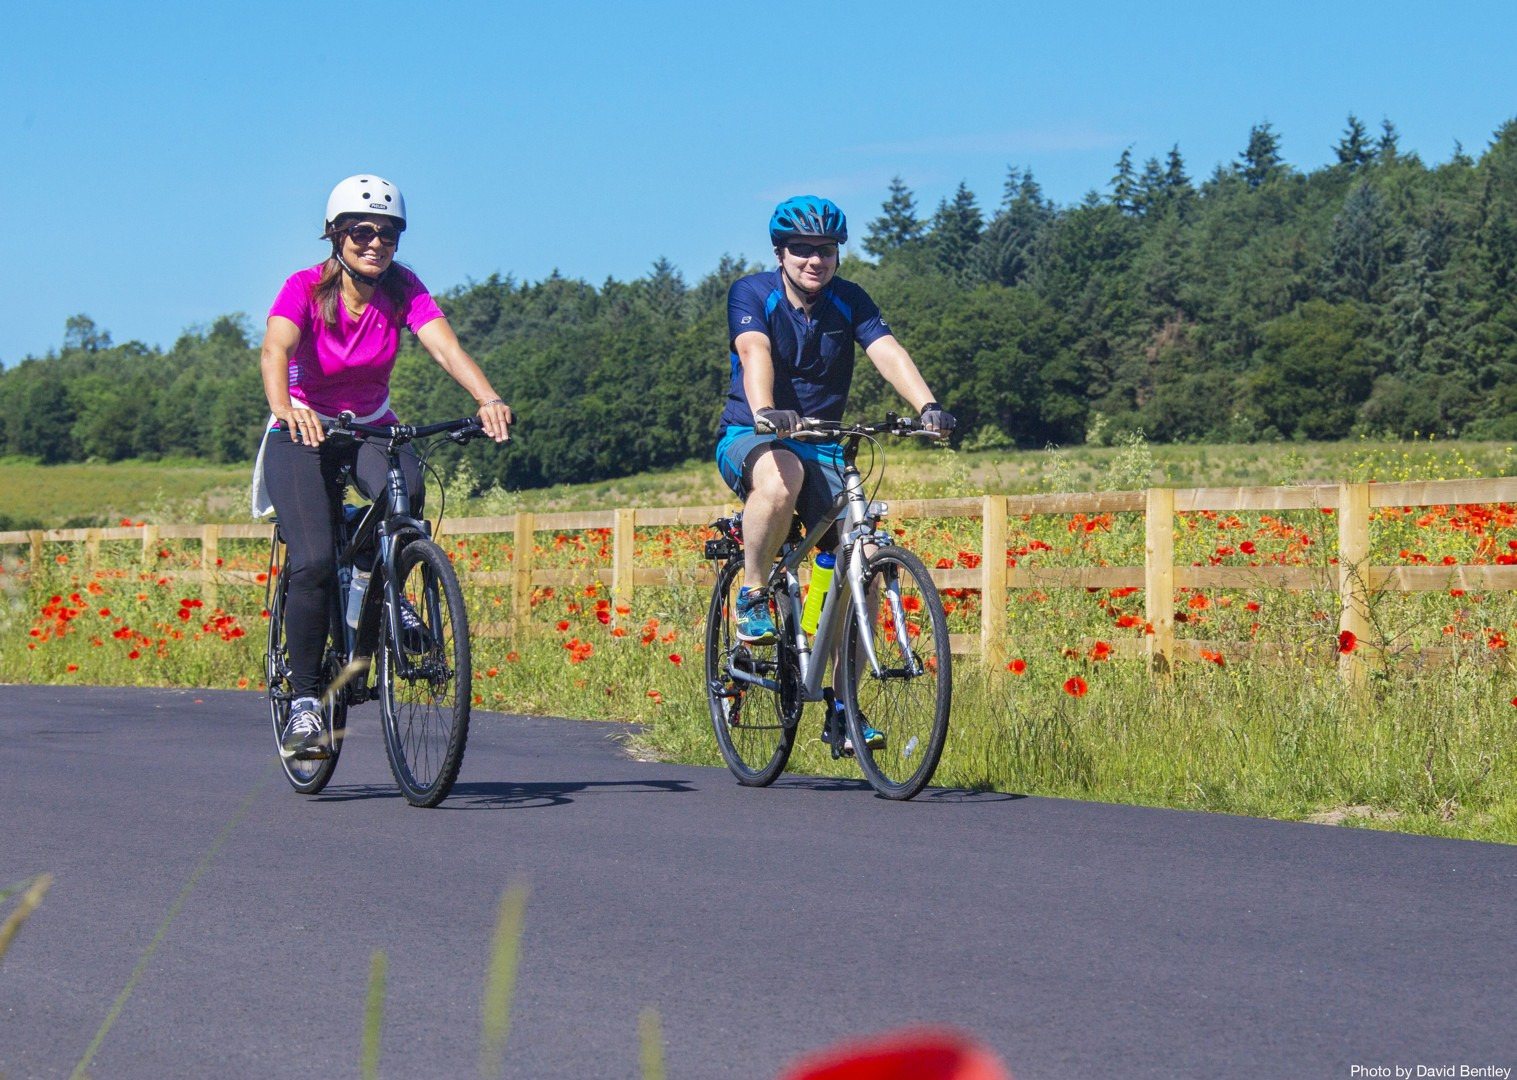 Hadrians-Cycleway-Self-Guided-Leisure-Cycling-Holiday-Cumbria-and-Northumberland.jpg - UK - Hadrian's Cycleway - 6 Days Cycling - Self-Guided Leisure Cycling Holiday - Leisure Cycling